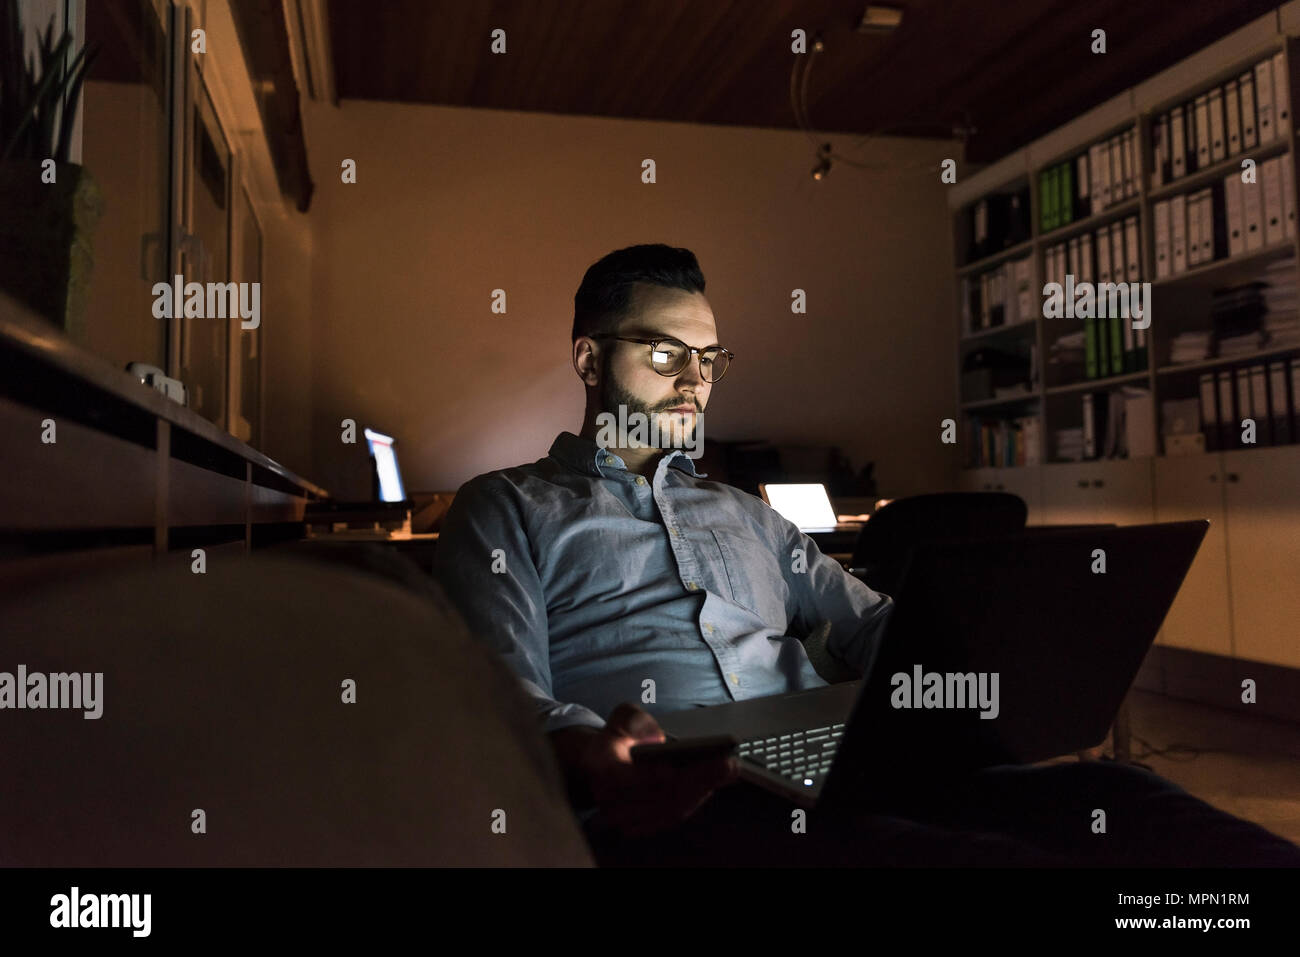 Businessman working on laptop in office at night - Stock Image